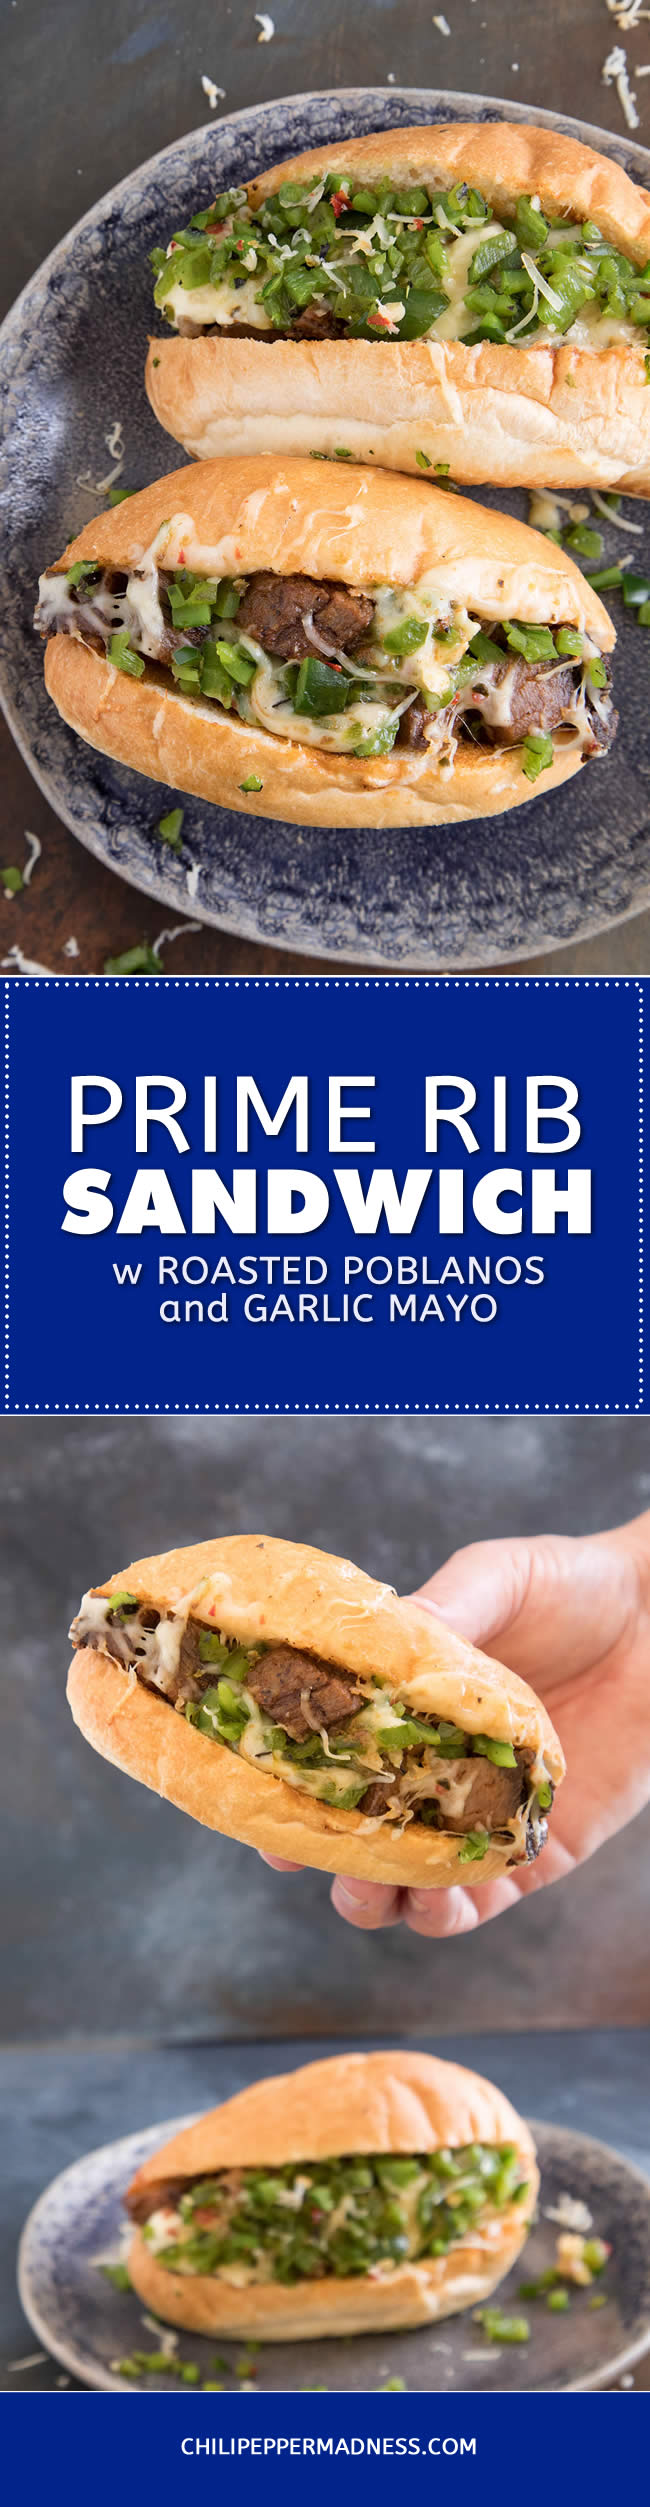 Prime Rib Sandwich with Roasted Poblanos and Garlic Mayo - Recipe